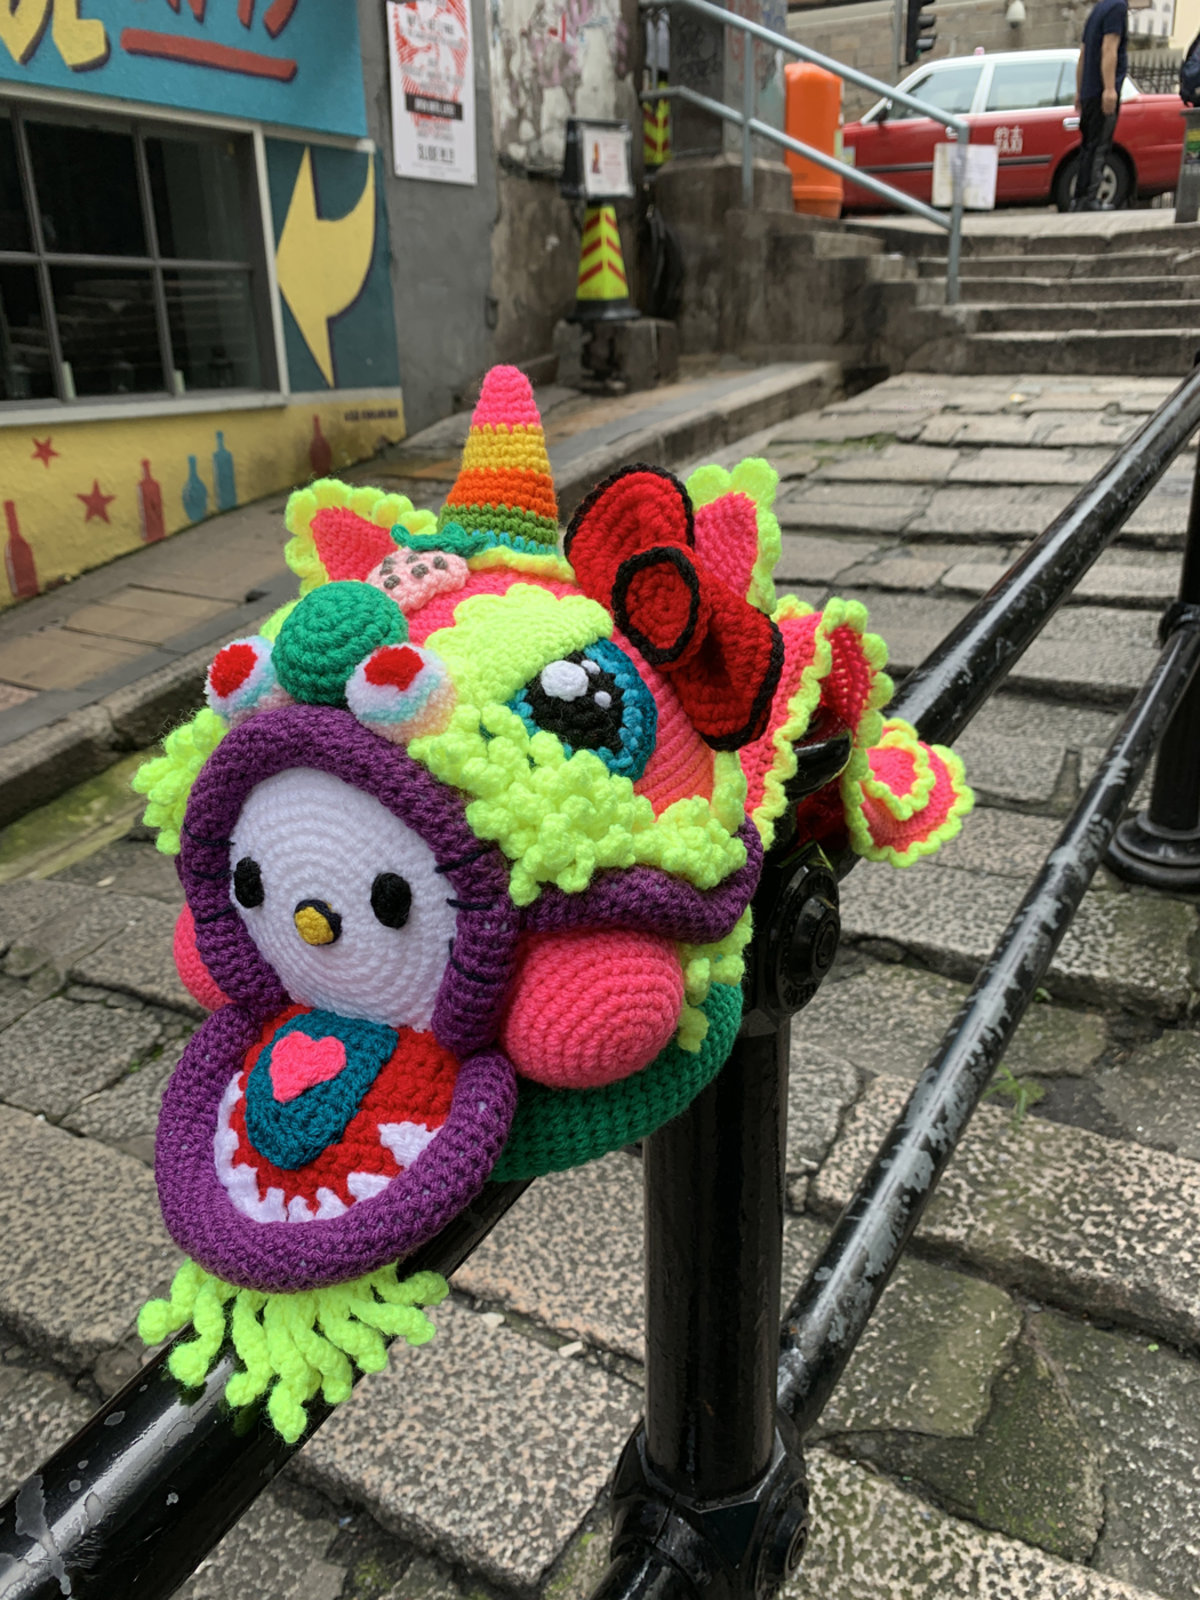 It's the 45th Anniversary of Hello Kitty ... Celebrate With La Belle Epoque's Crochet 'Hello Dance Lion' - It's SPECTACULAR!